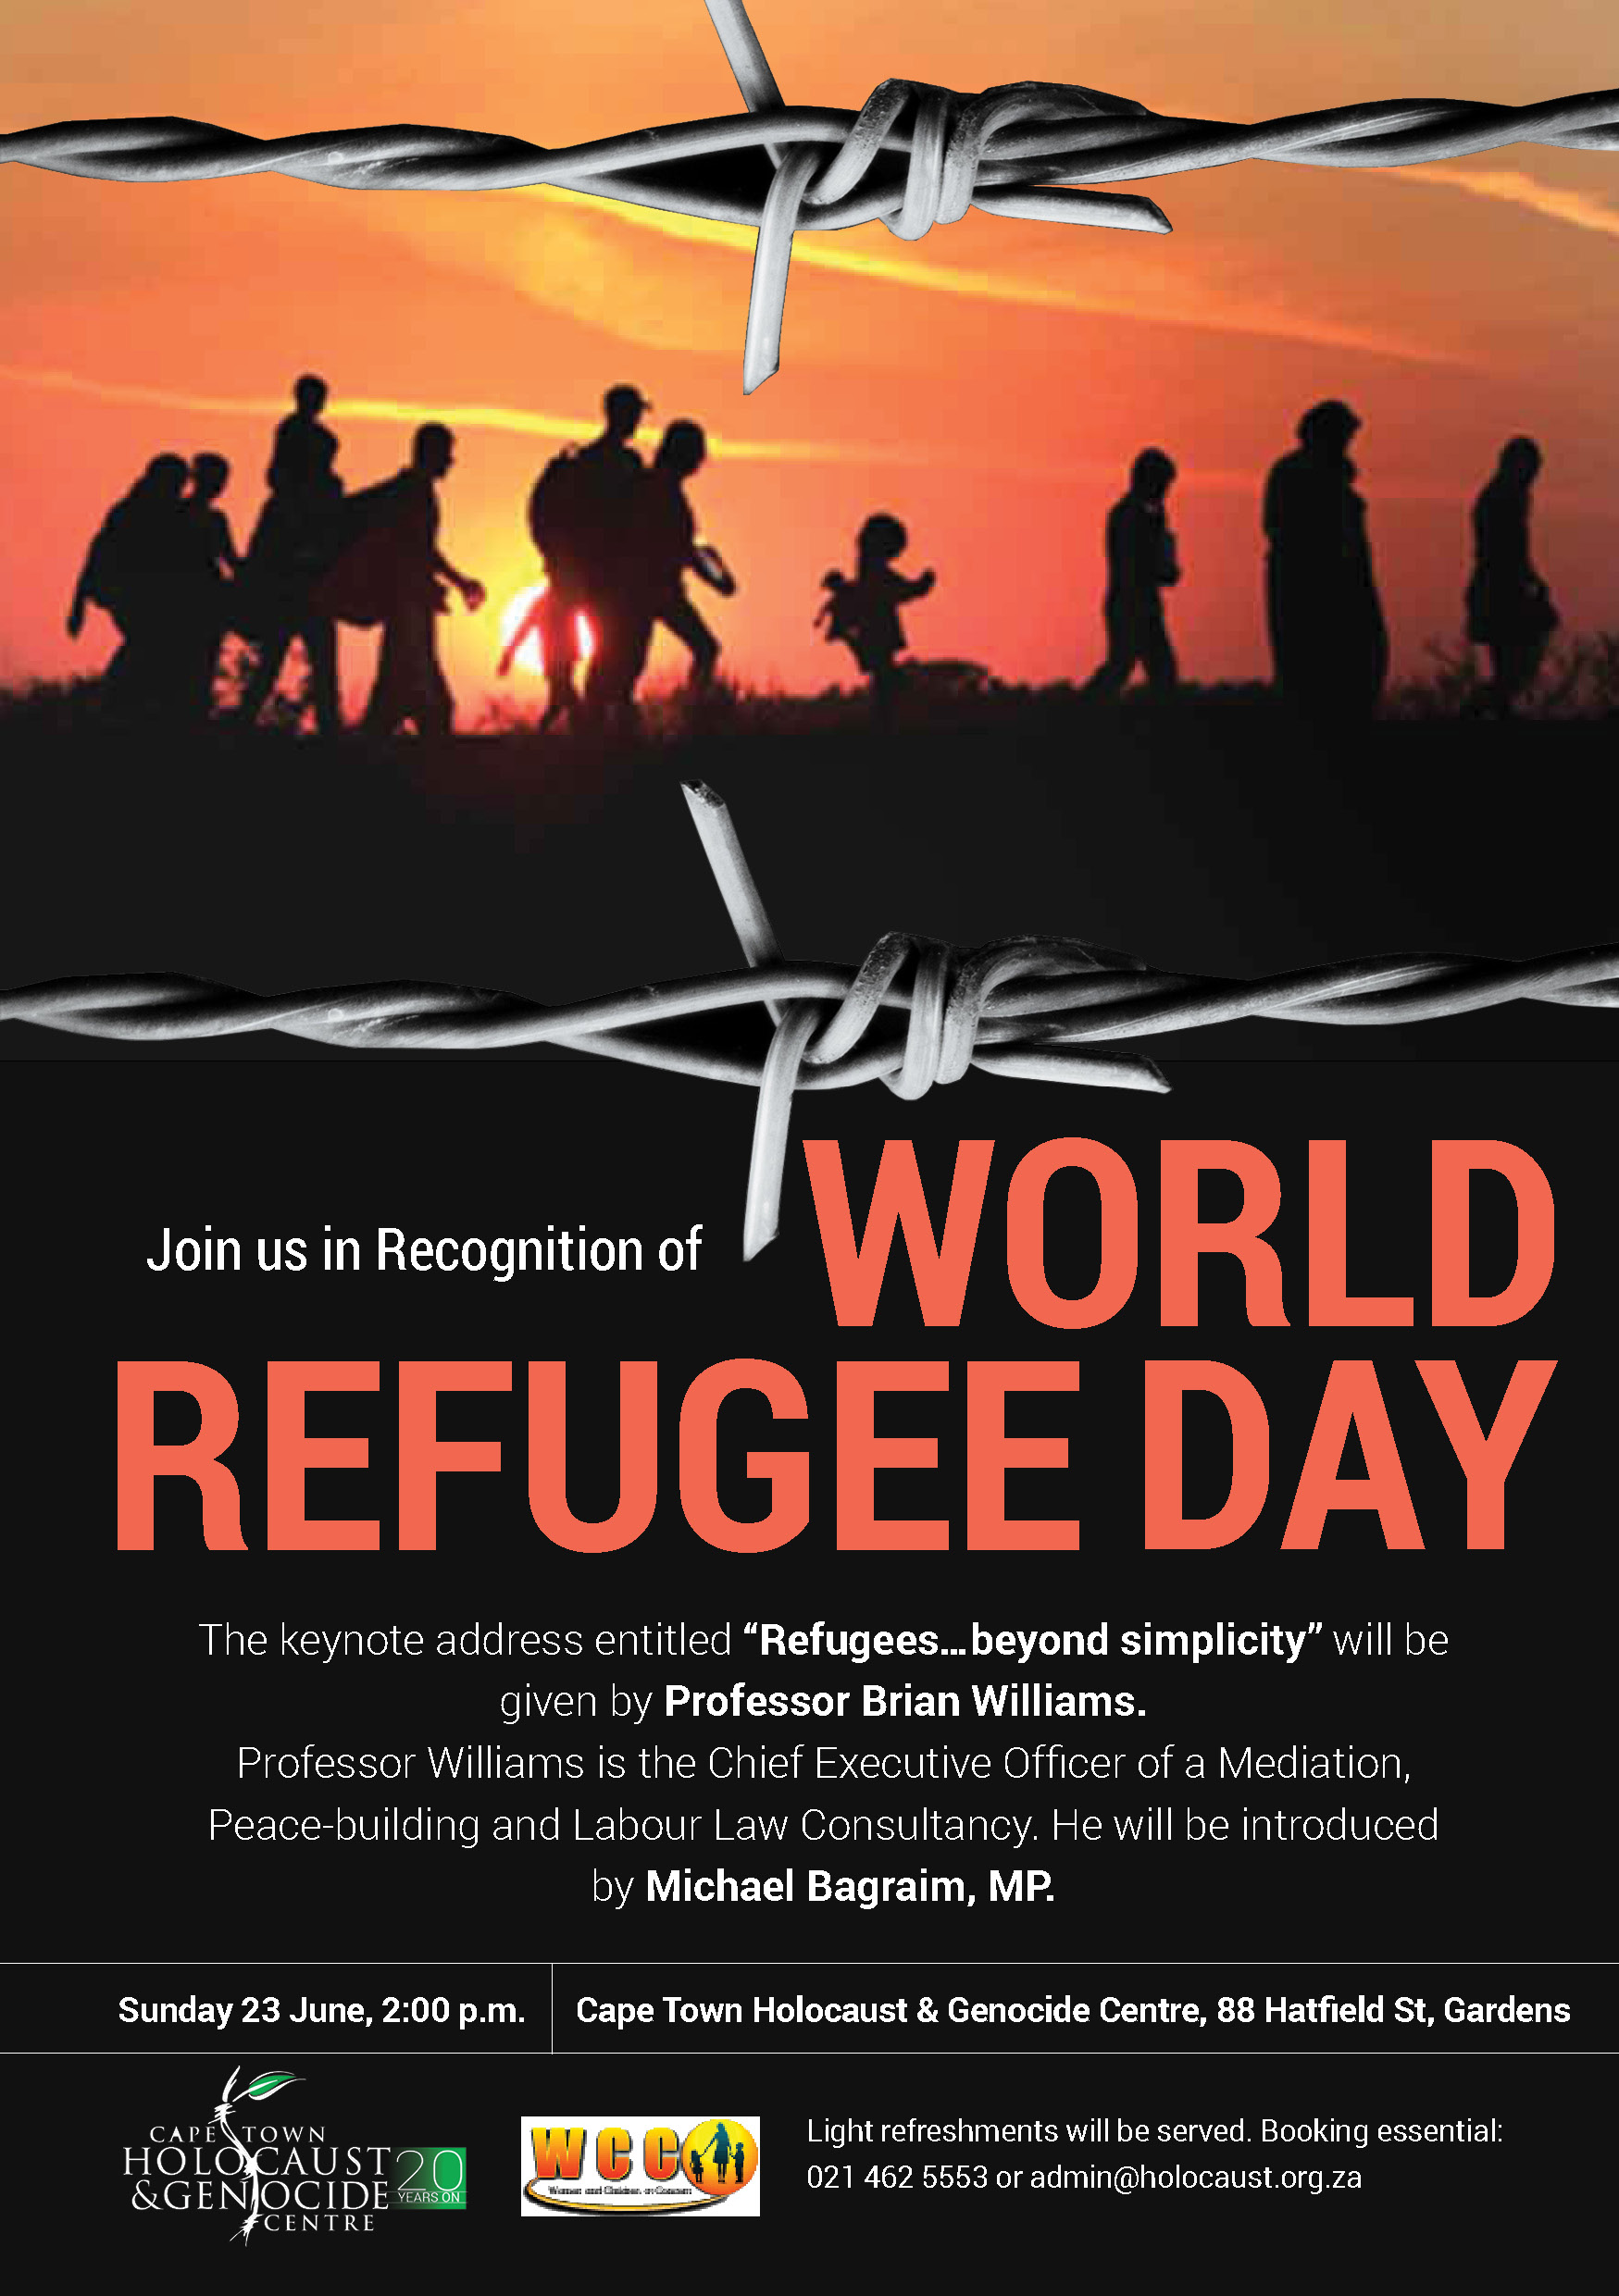 World Refugee Day - Cape Town Holocaust & Genocide Centre